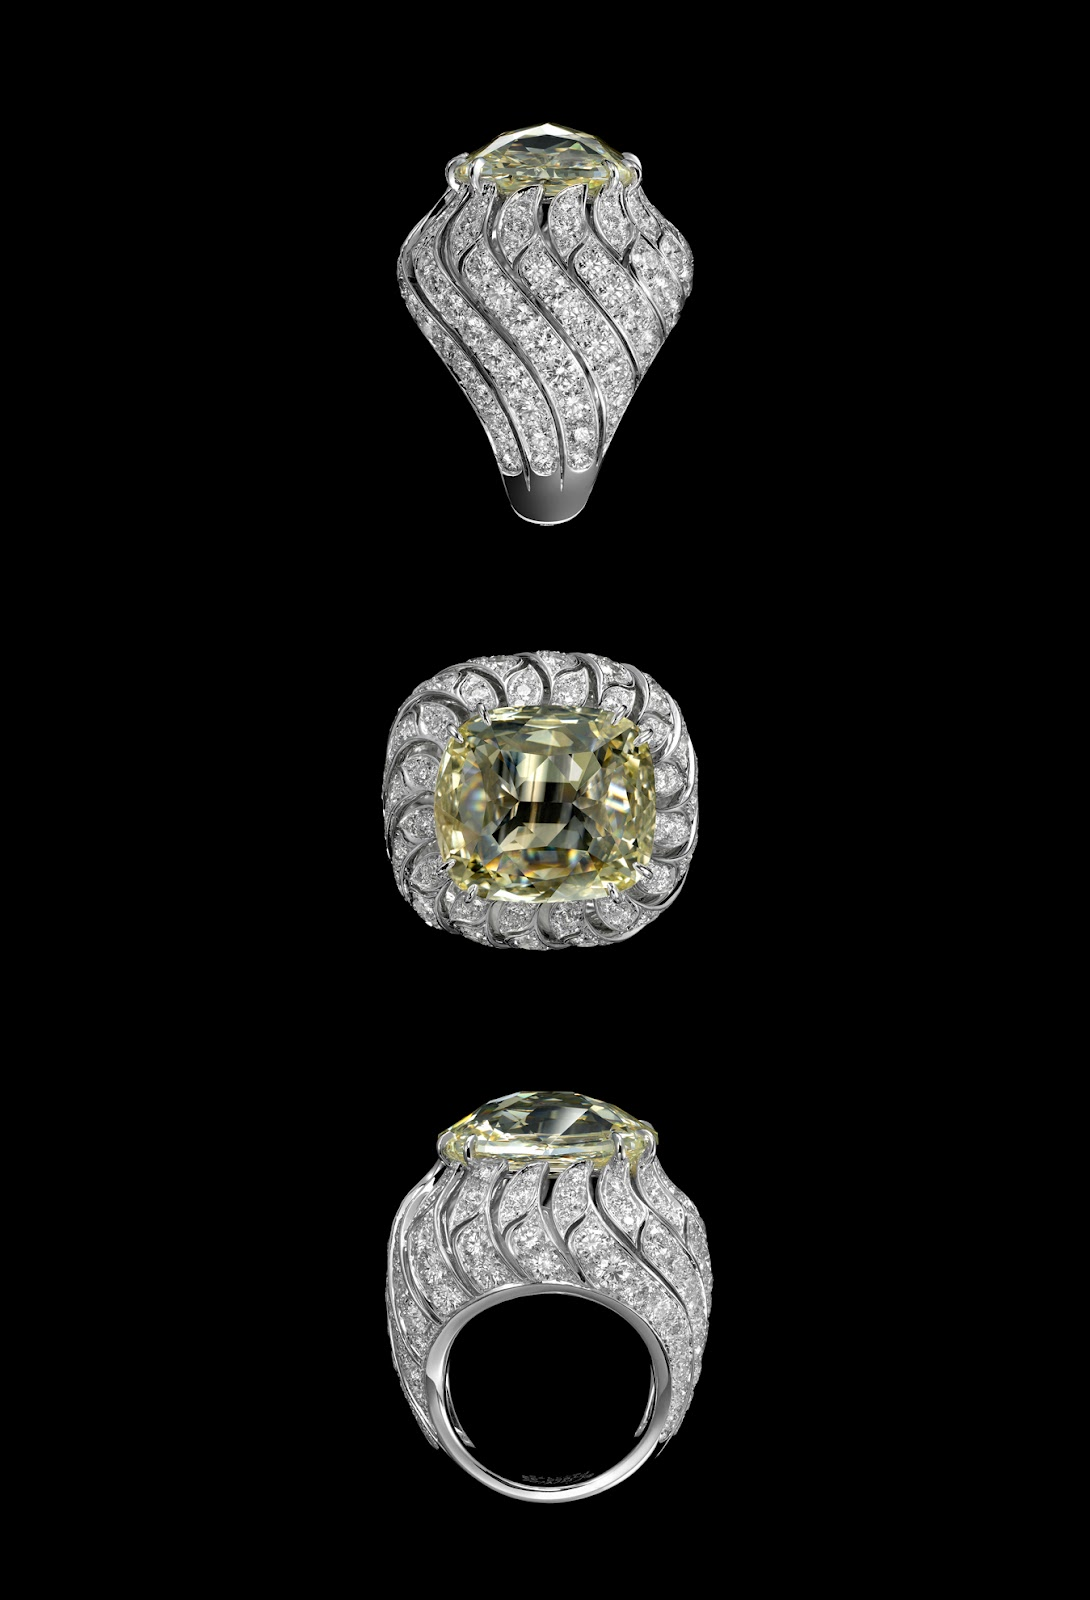 Passion For Luxury Cartier At The 26th Biennale Des